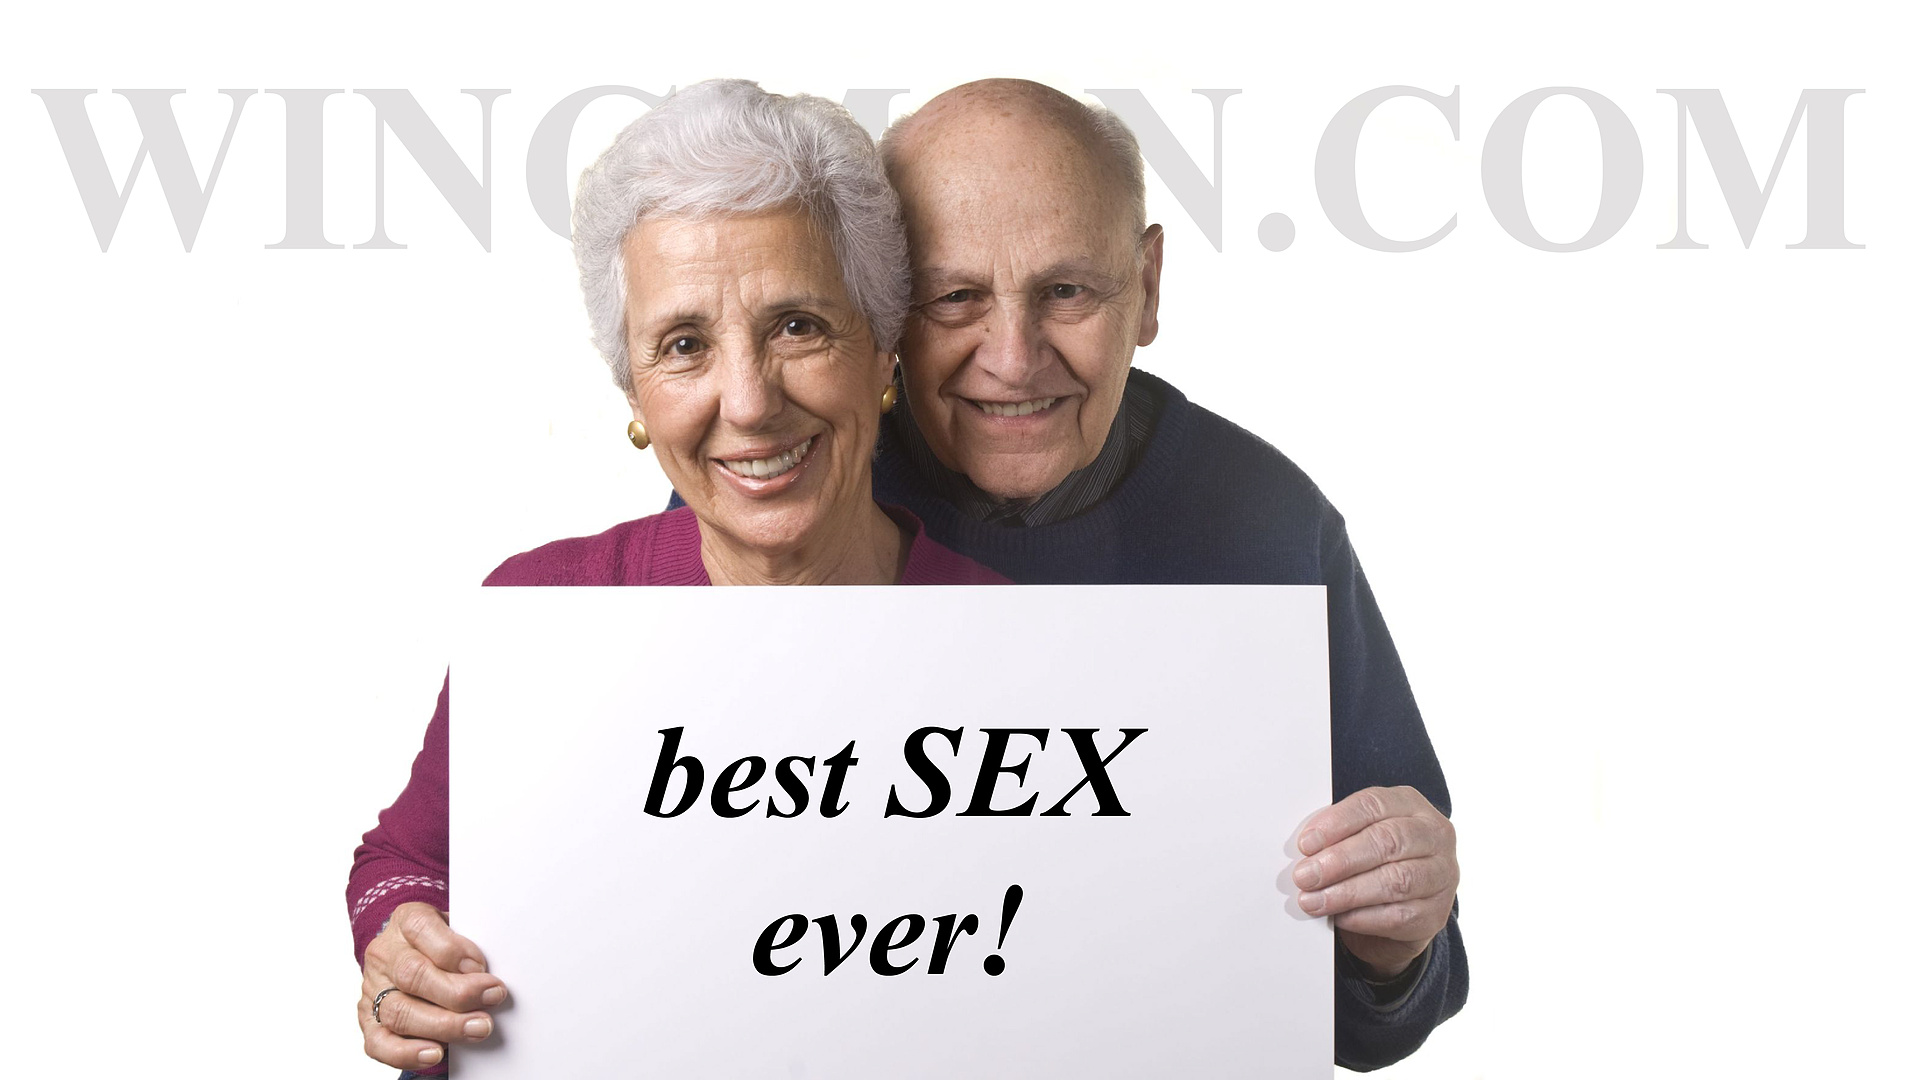 BEST SEX EVER!